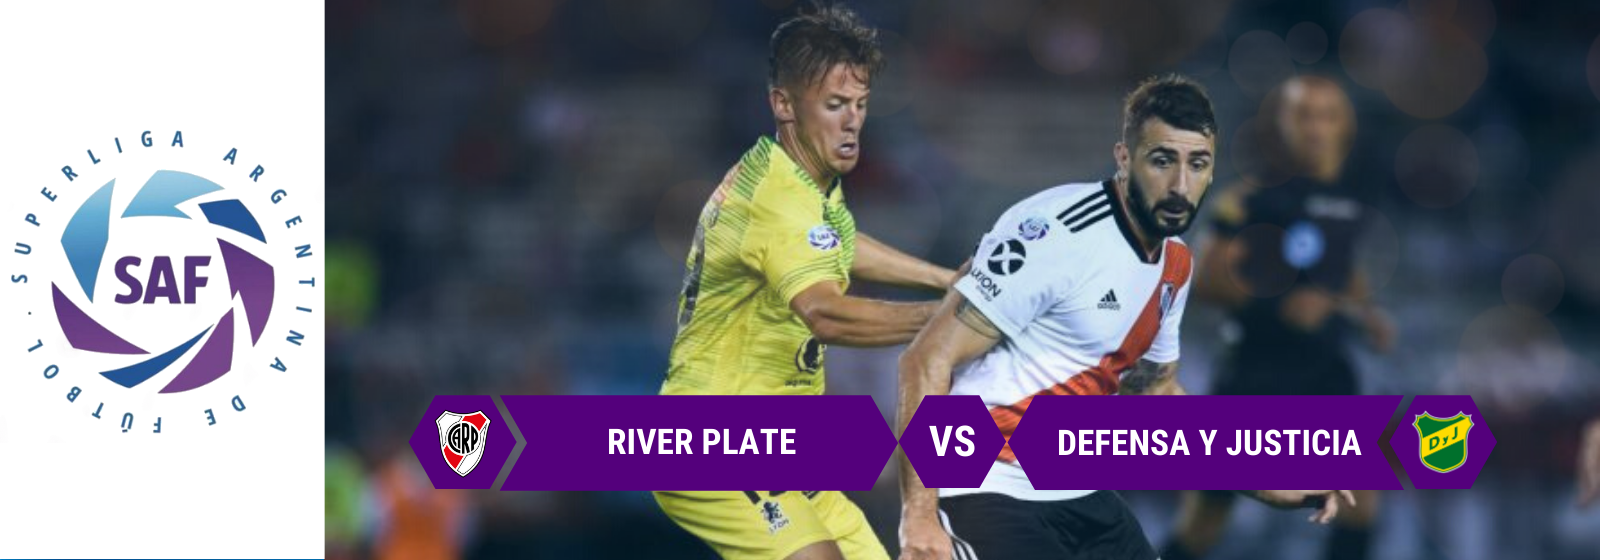 Asianconnect: River vs Defensa y Justicia Odds for February 29, 2020